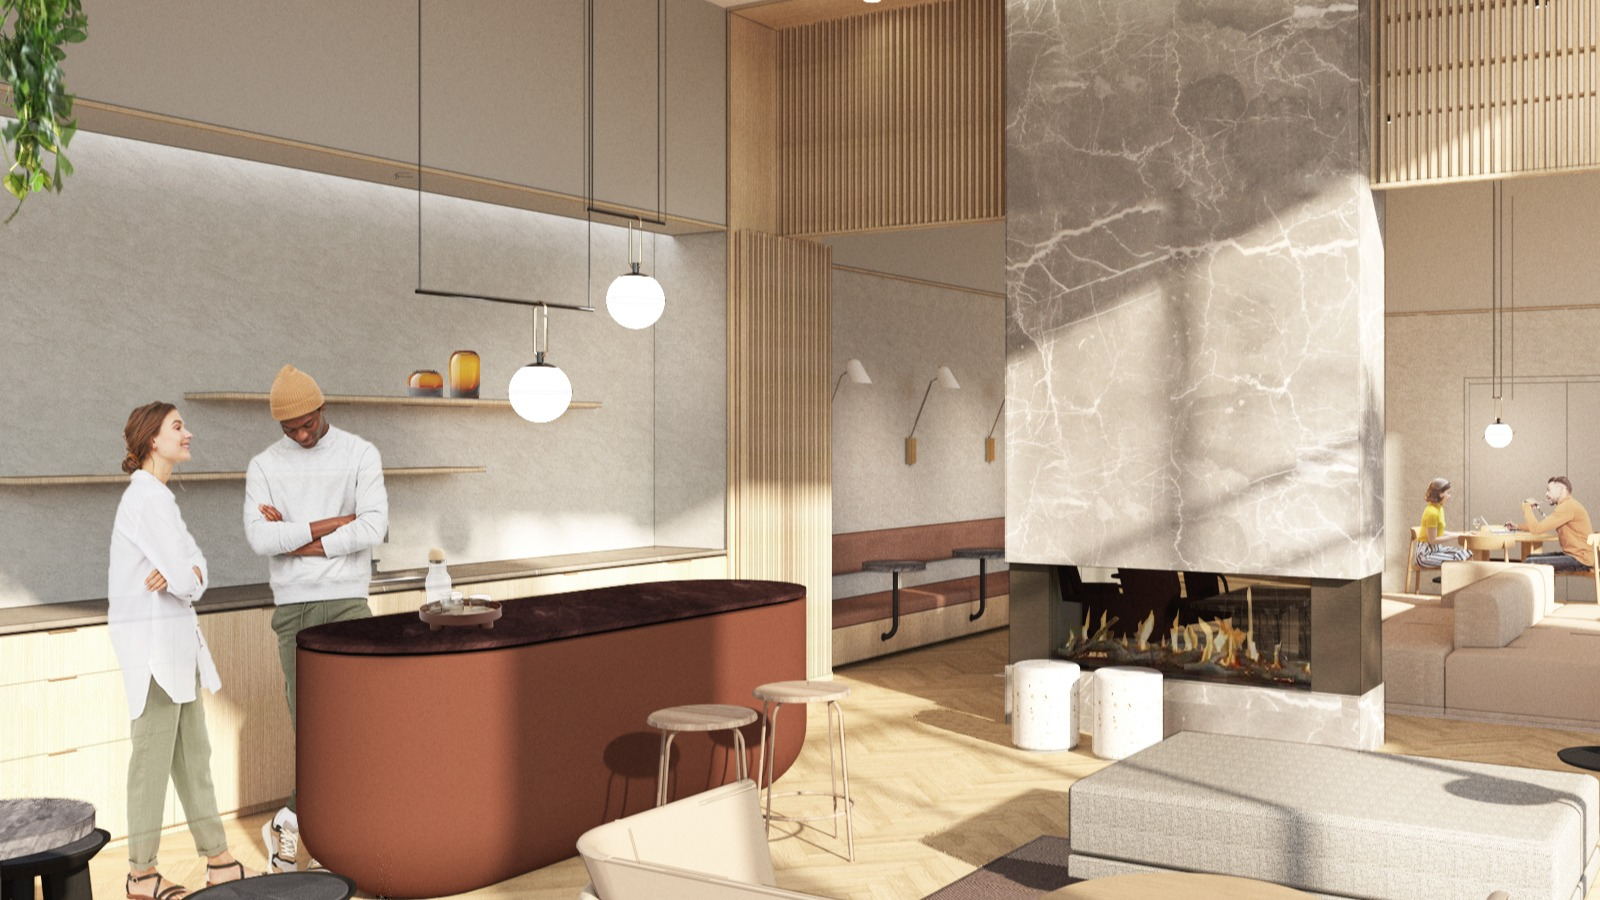 rendering of lounge area with amenities such as bar, tables and lounge chairs